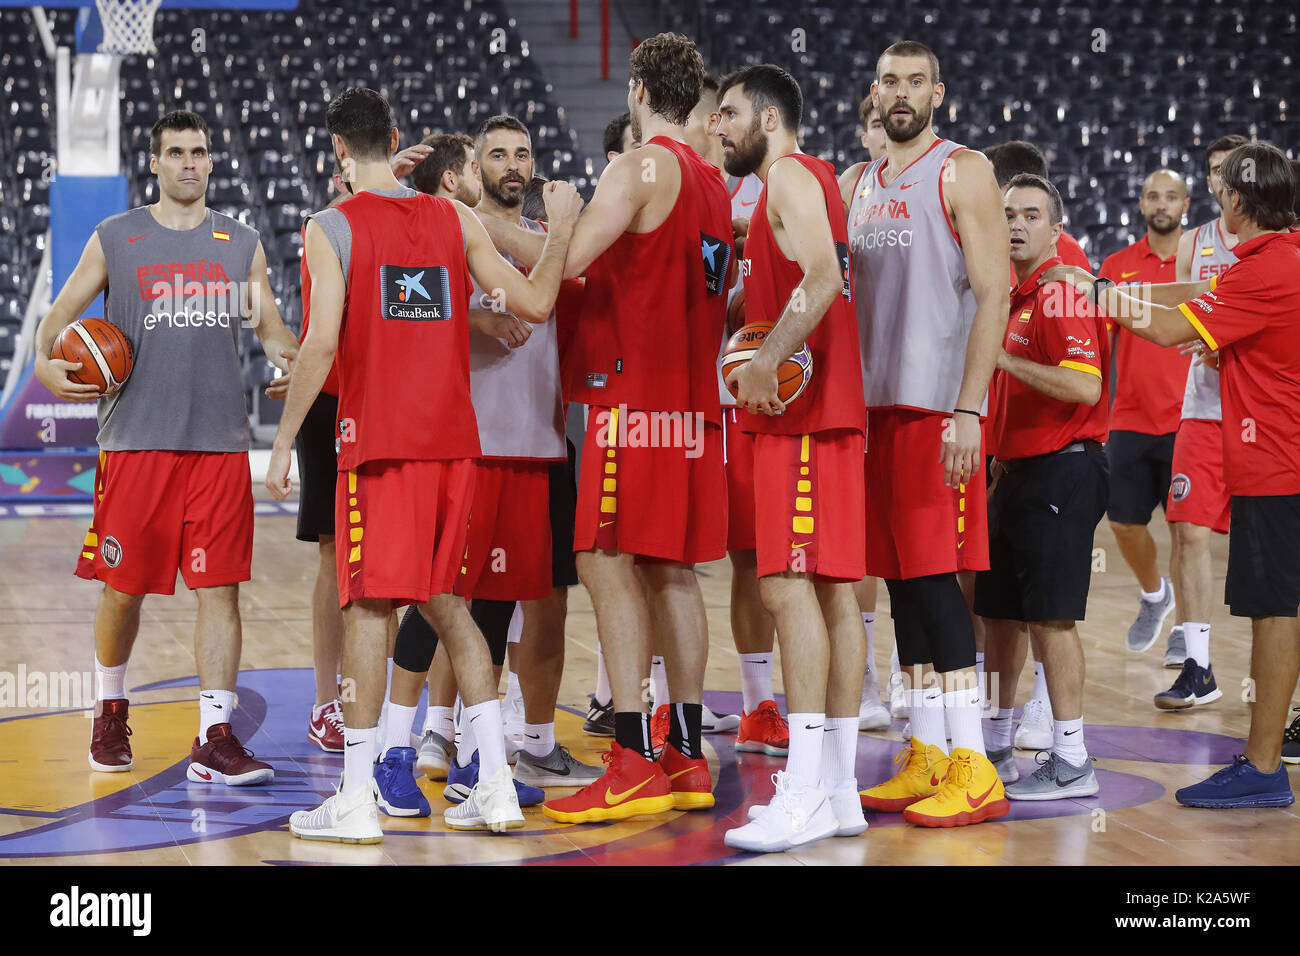 87b39c973c6 Spain's national basketball team players participate in a training session  at the Cluj Napoca pavillion in Cluj, Romania, 30 August 2017.